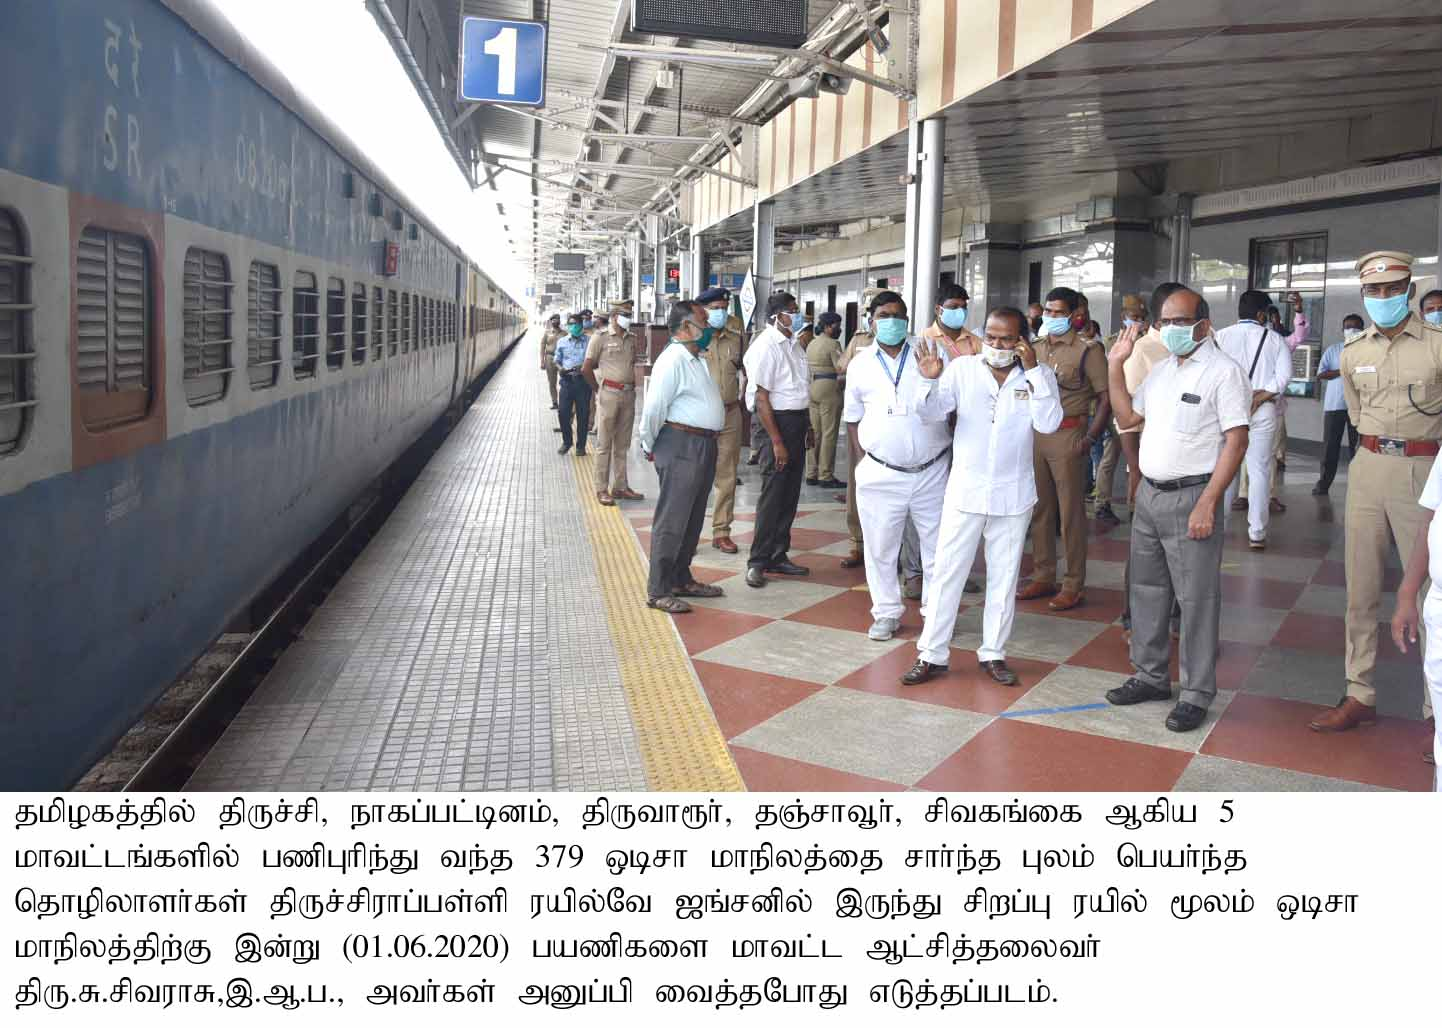 District Collector inspected transporting of Migrant Workers to Odisha through Special Train on 01-06-2020